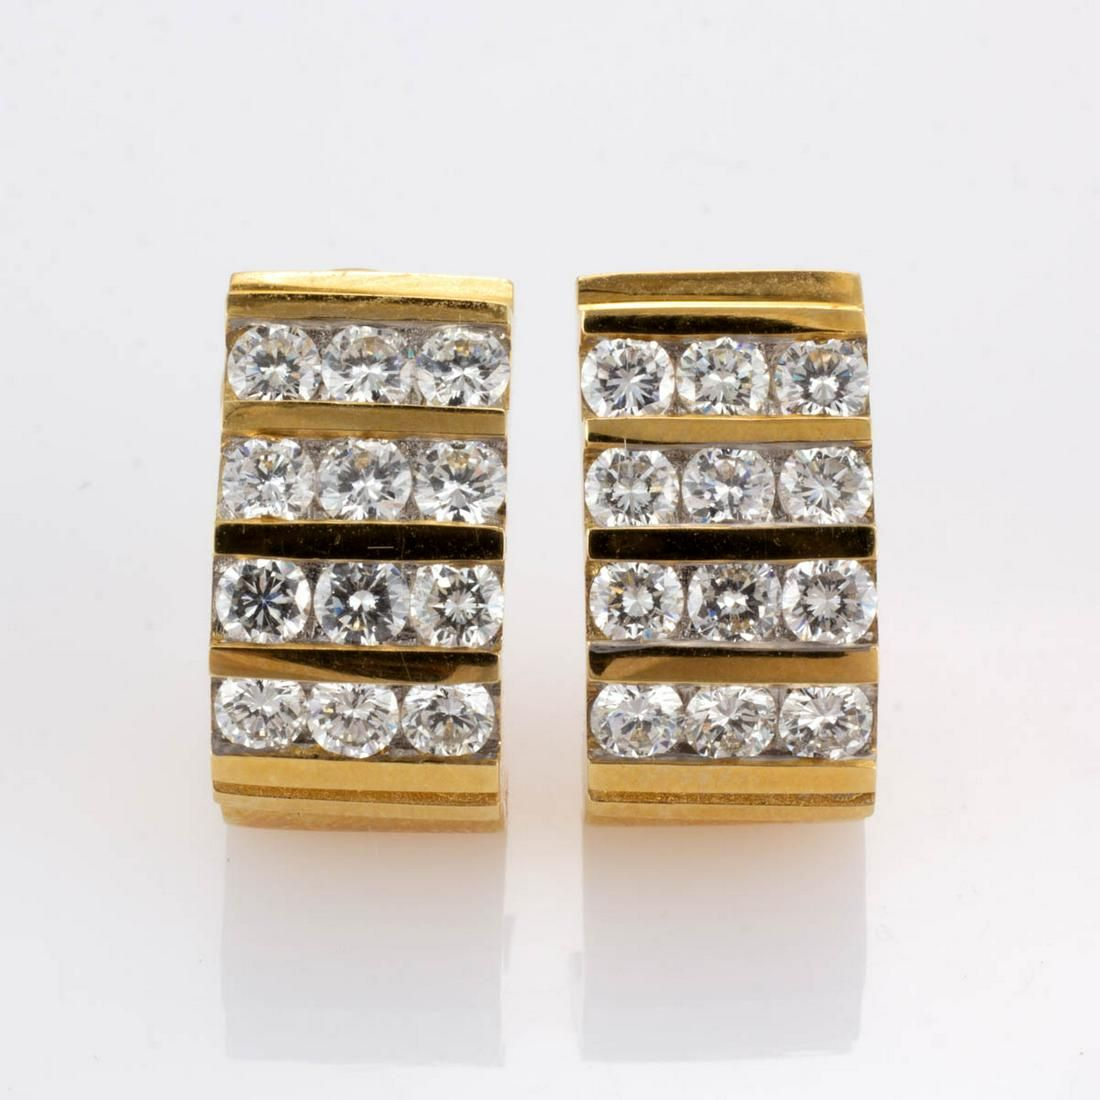 VINTAGE / CONTEMPORARY 14K YELLOW GOLD AND DIAMOND